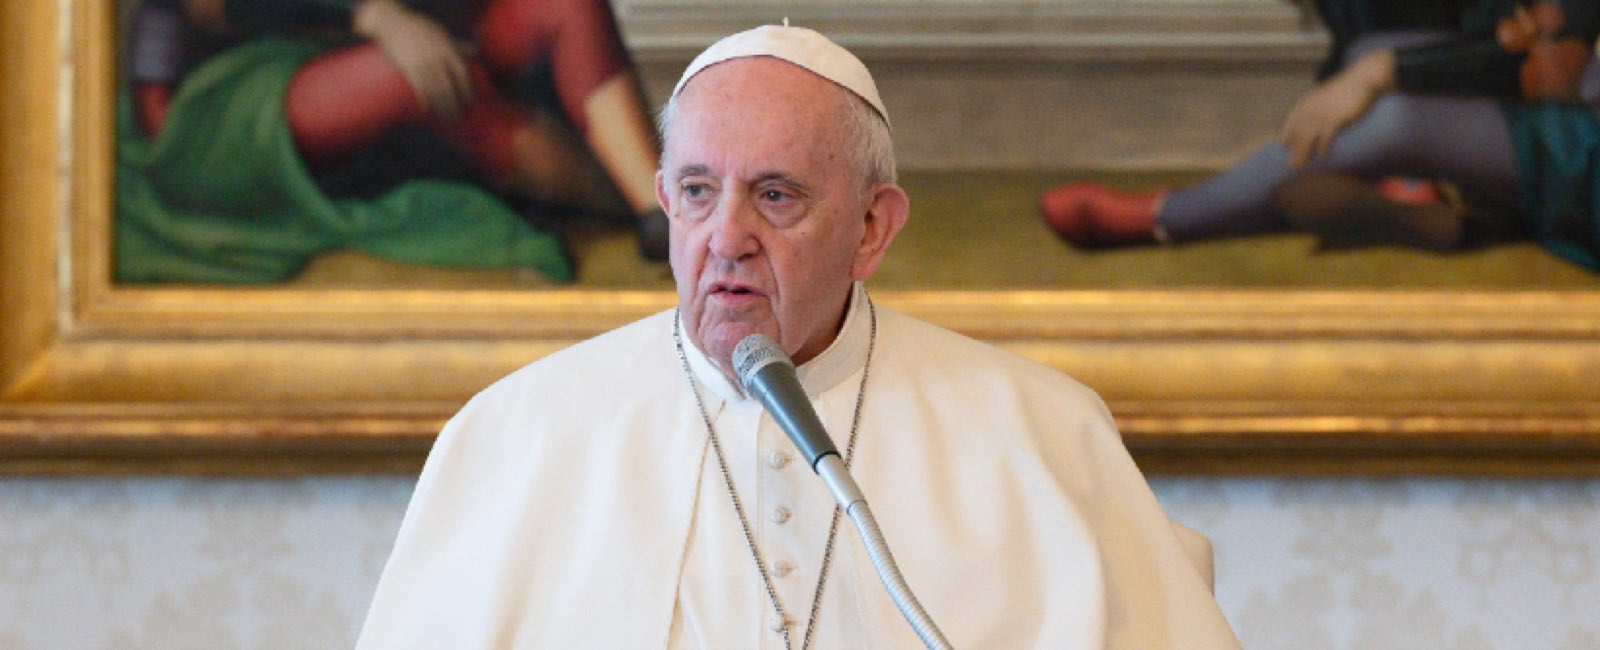 The Vatican Cookbook reveals the Argentinian-born Pope Francis loves Italian wine